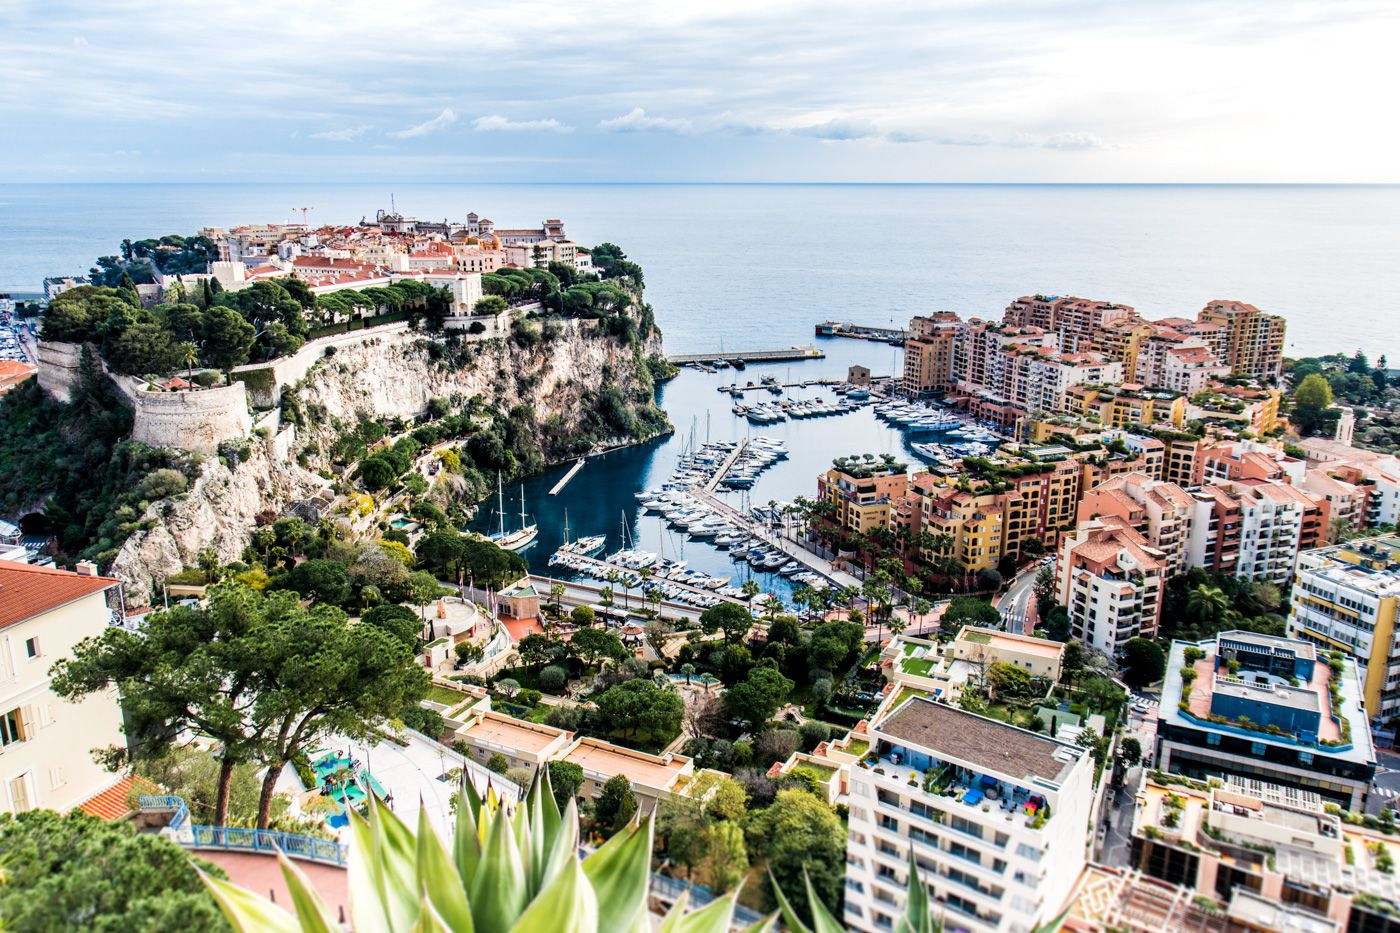 Monaco Travel Cost Average Price Of A Vacation To Monaco Food Meal Budget Daily Weekly Expenses Budgetyourtrip Com